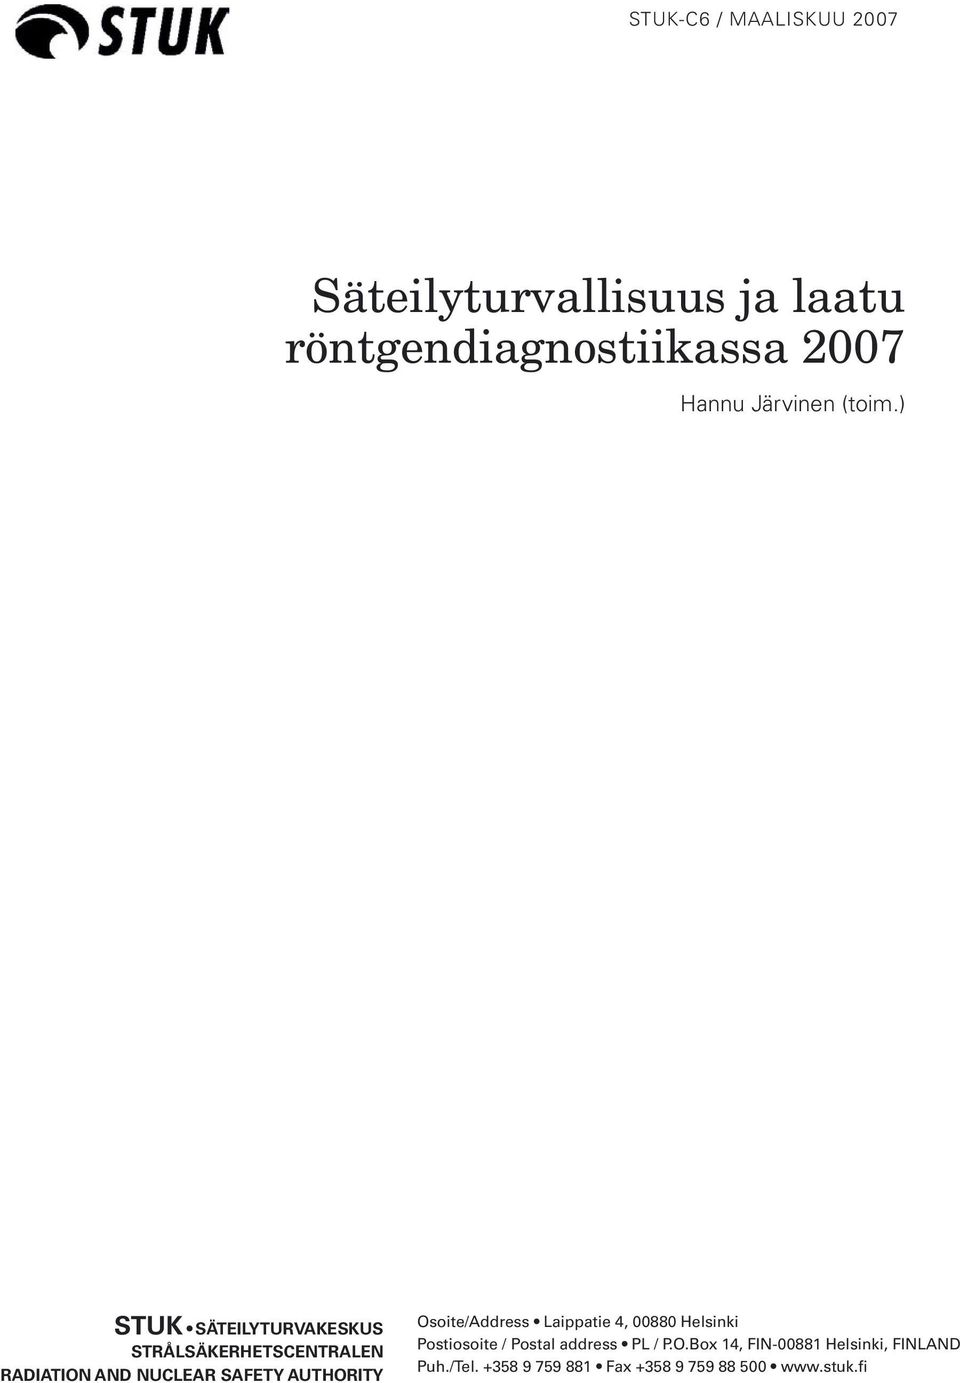 ) STUK SÄTEILYTURVAKESKUS STRÅLSÄKERHETSCENTRALEN RADIATION AND NUCLEAR SAFETY AUTHORITY